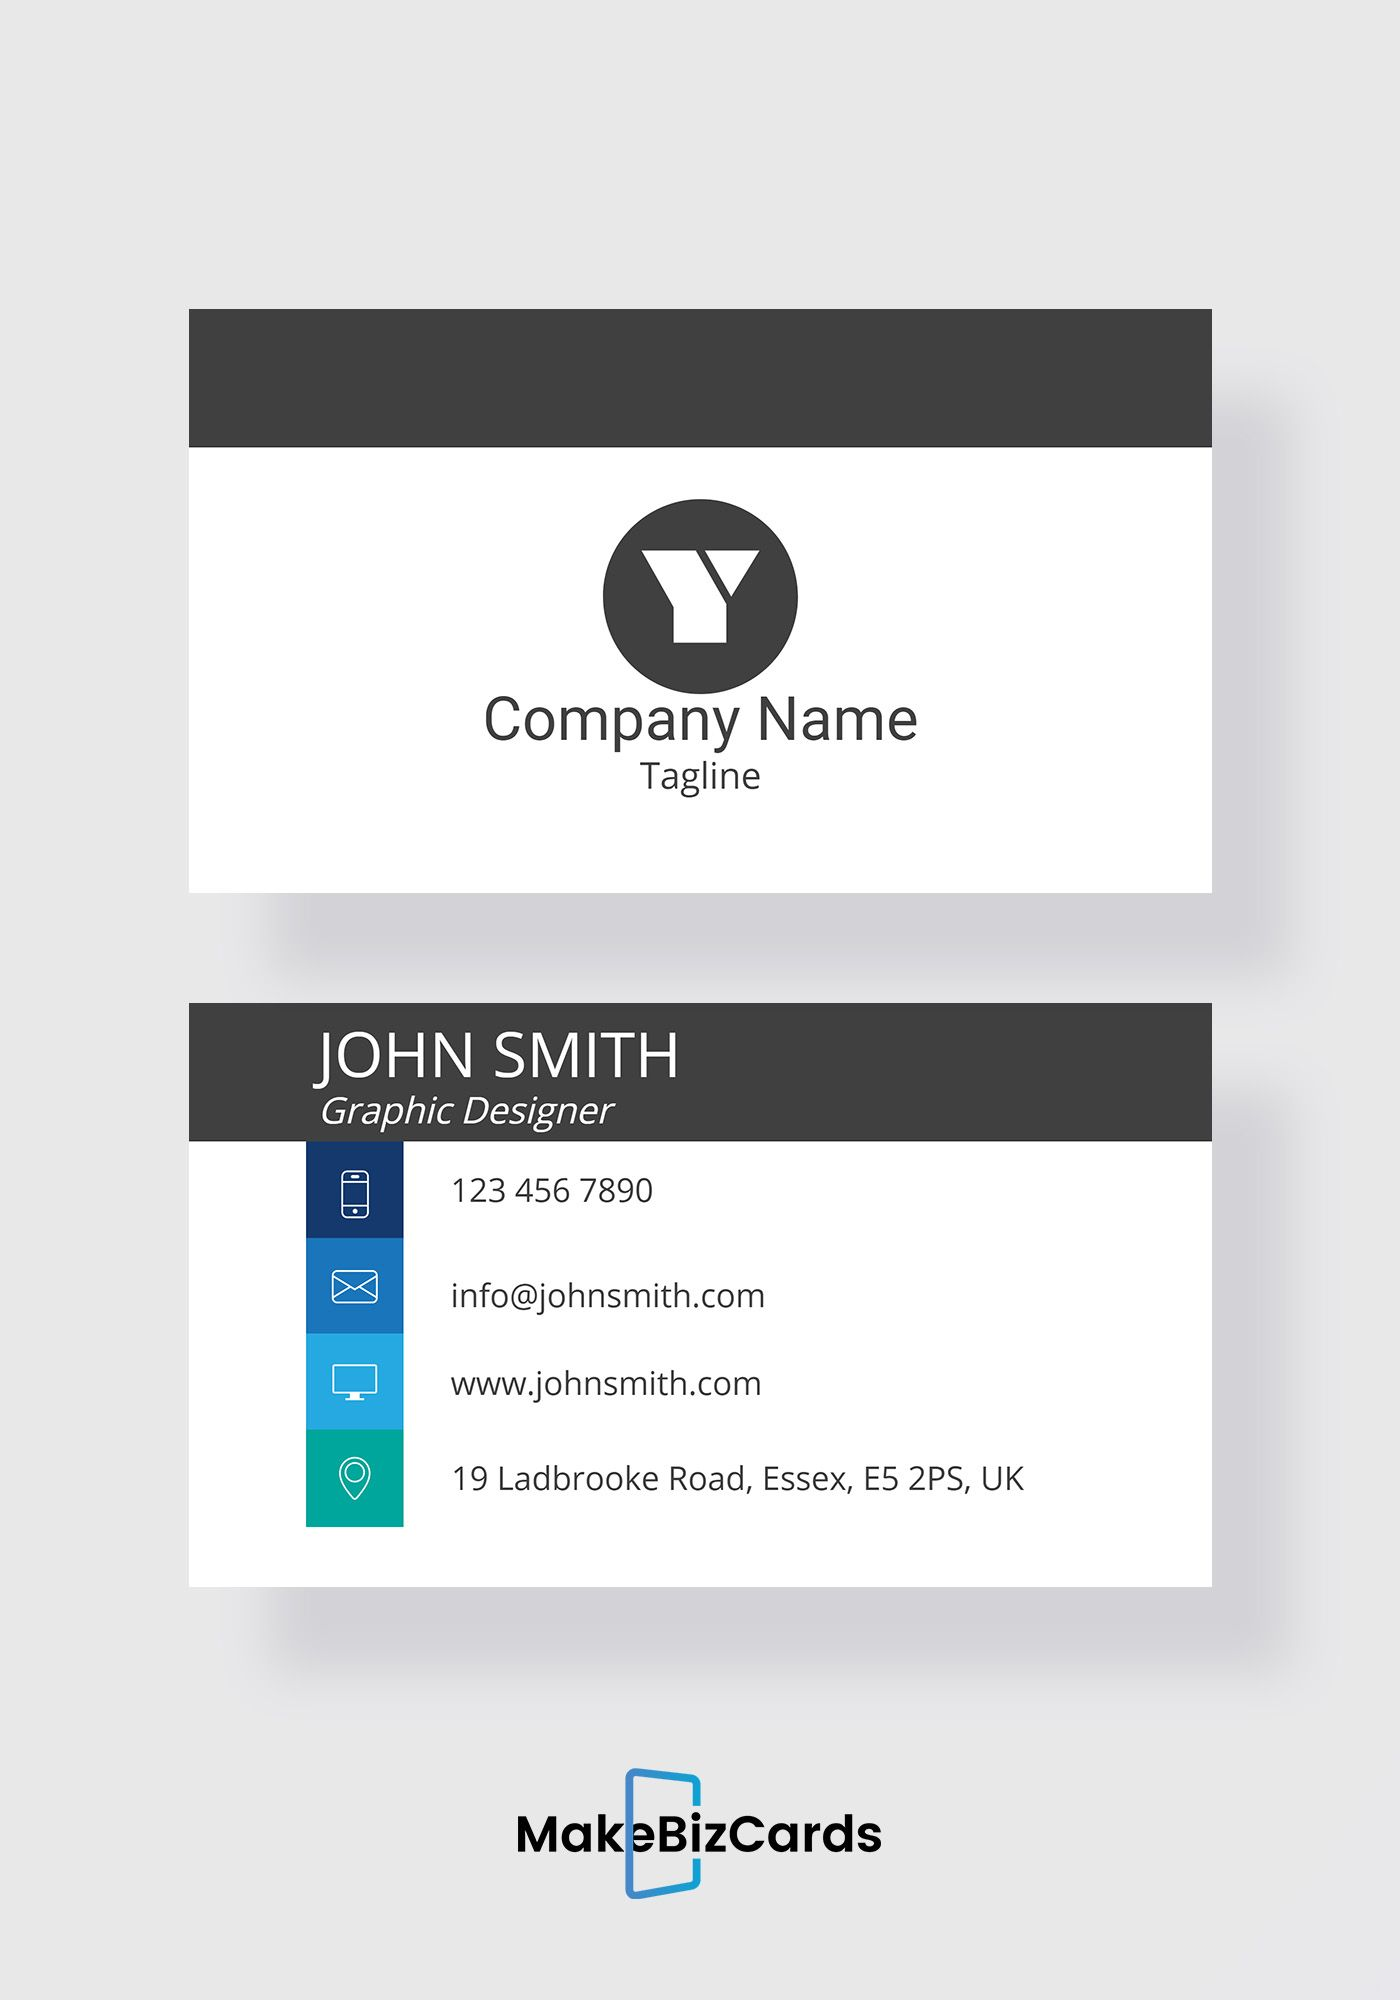 Free Coo Business Card Template Businesscard Design Coo Business Card Template Printing Business Cards Trendy Business Cards